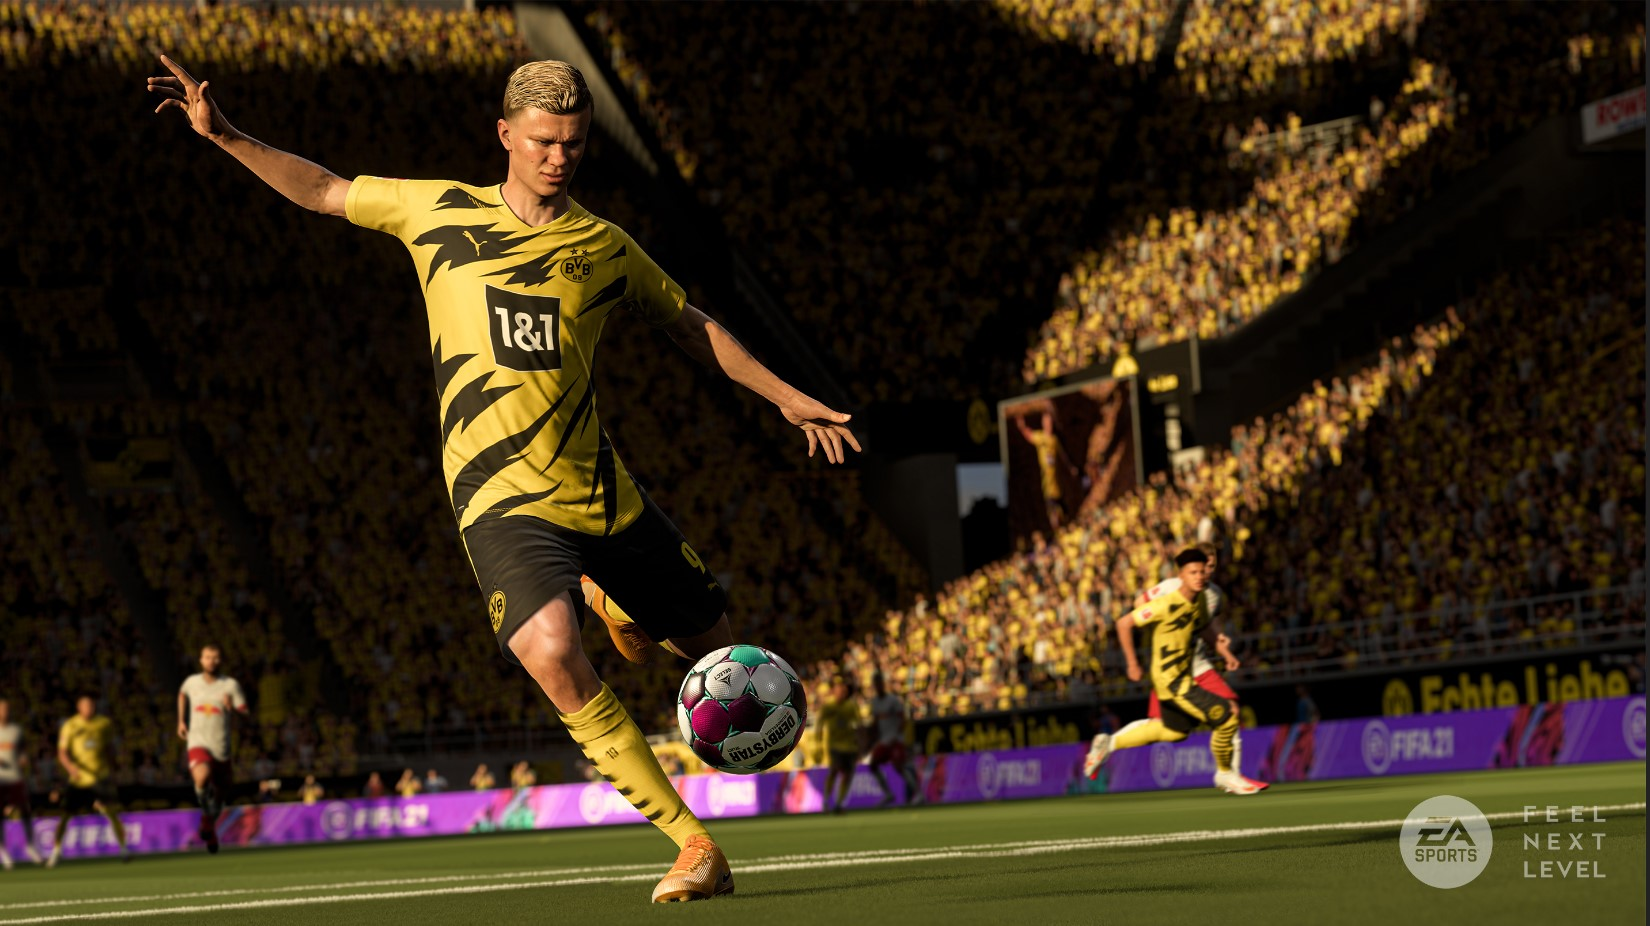 EA is 'funnelling' FIFA players to FUT's loot boxes, according to leaked document - VG247 thumbnail